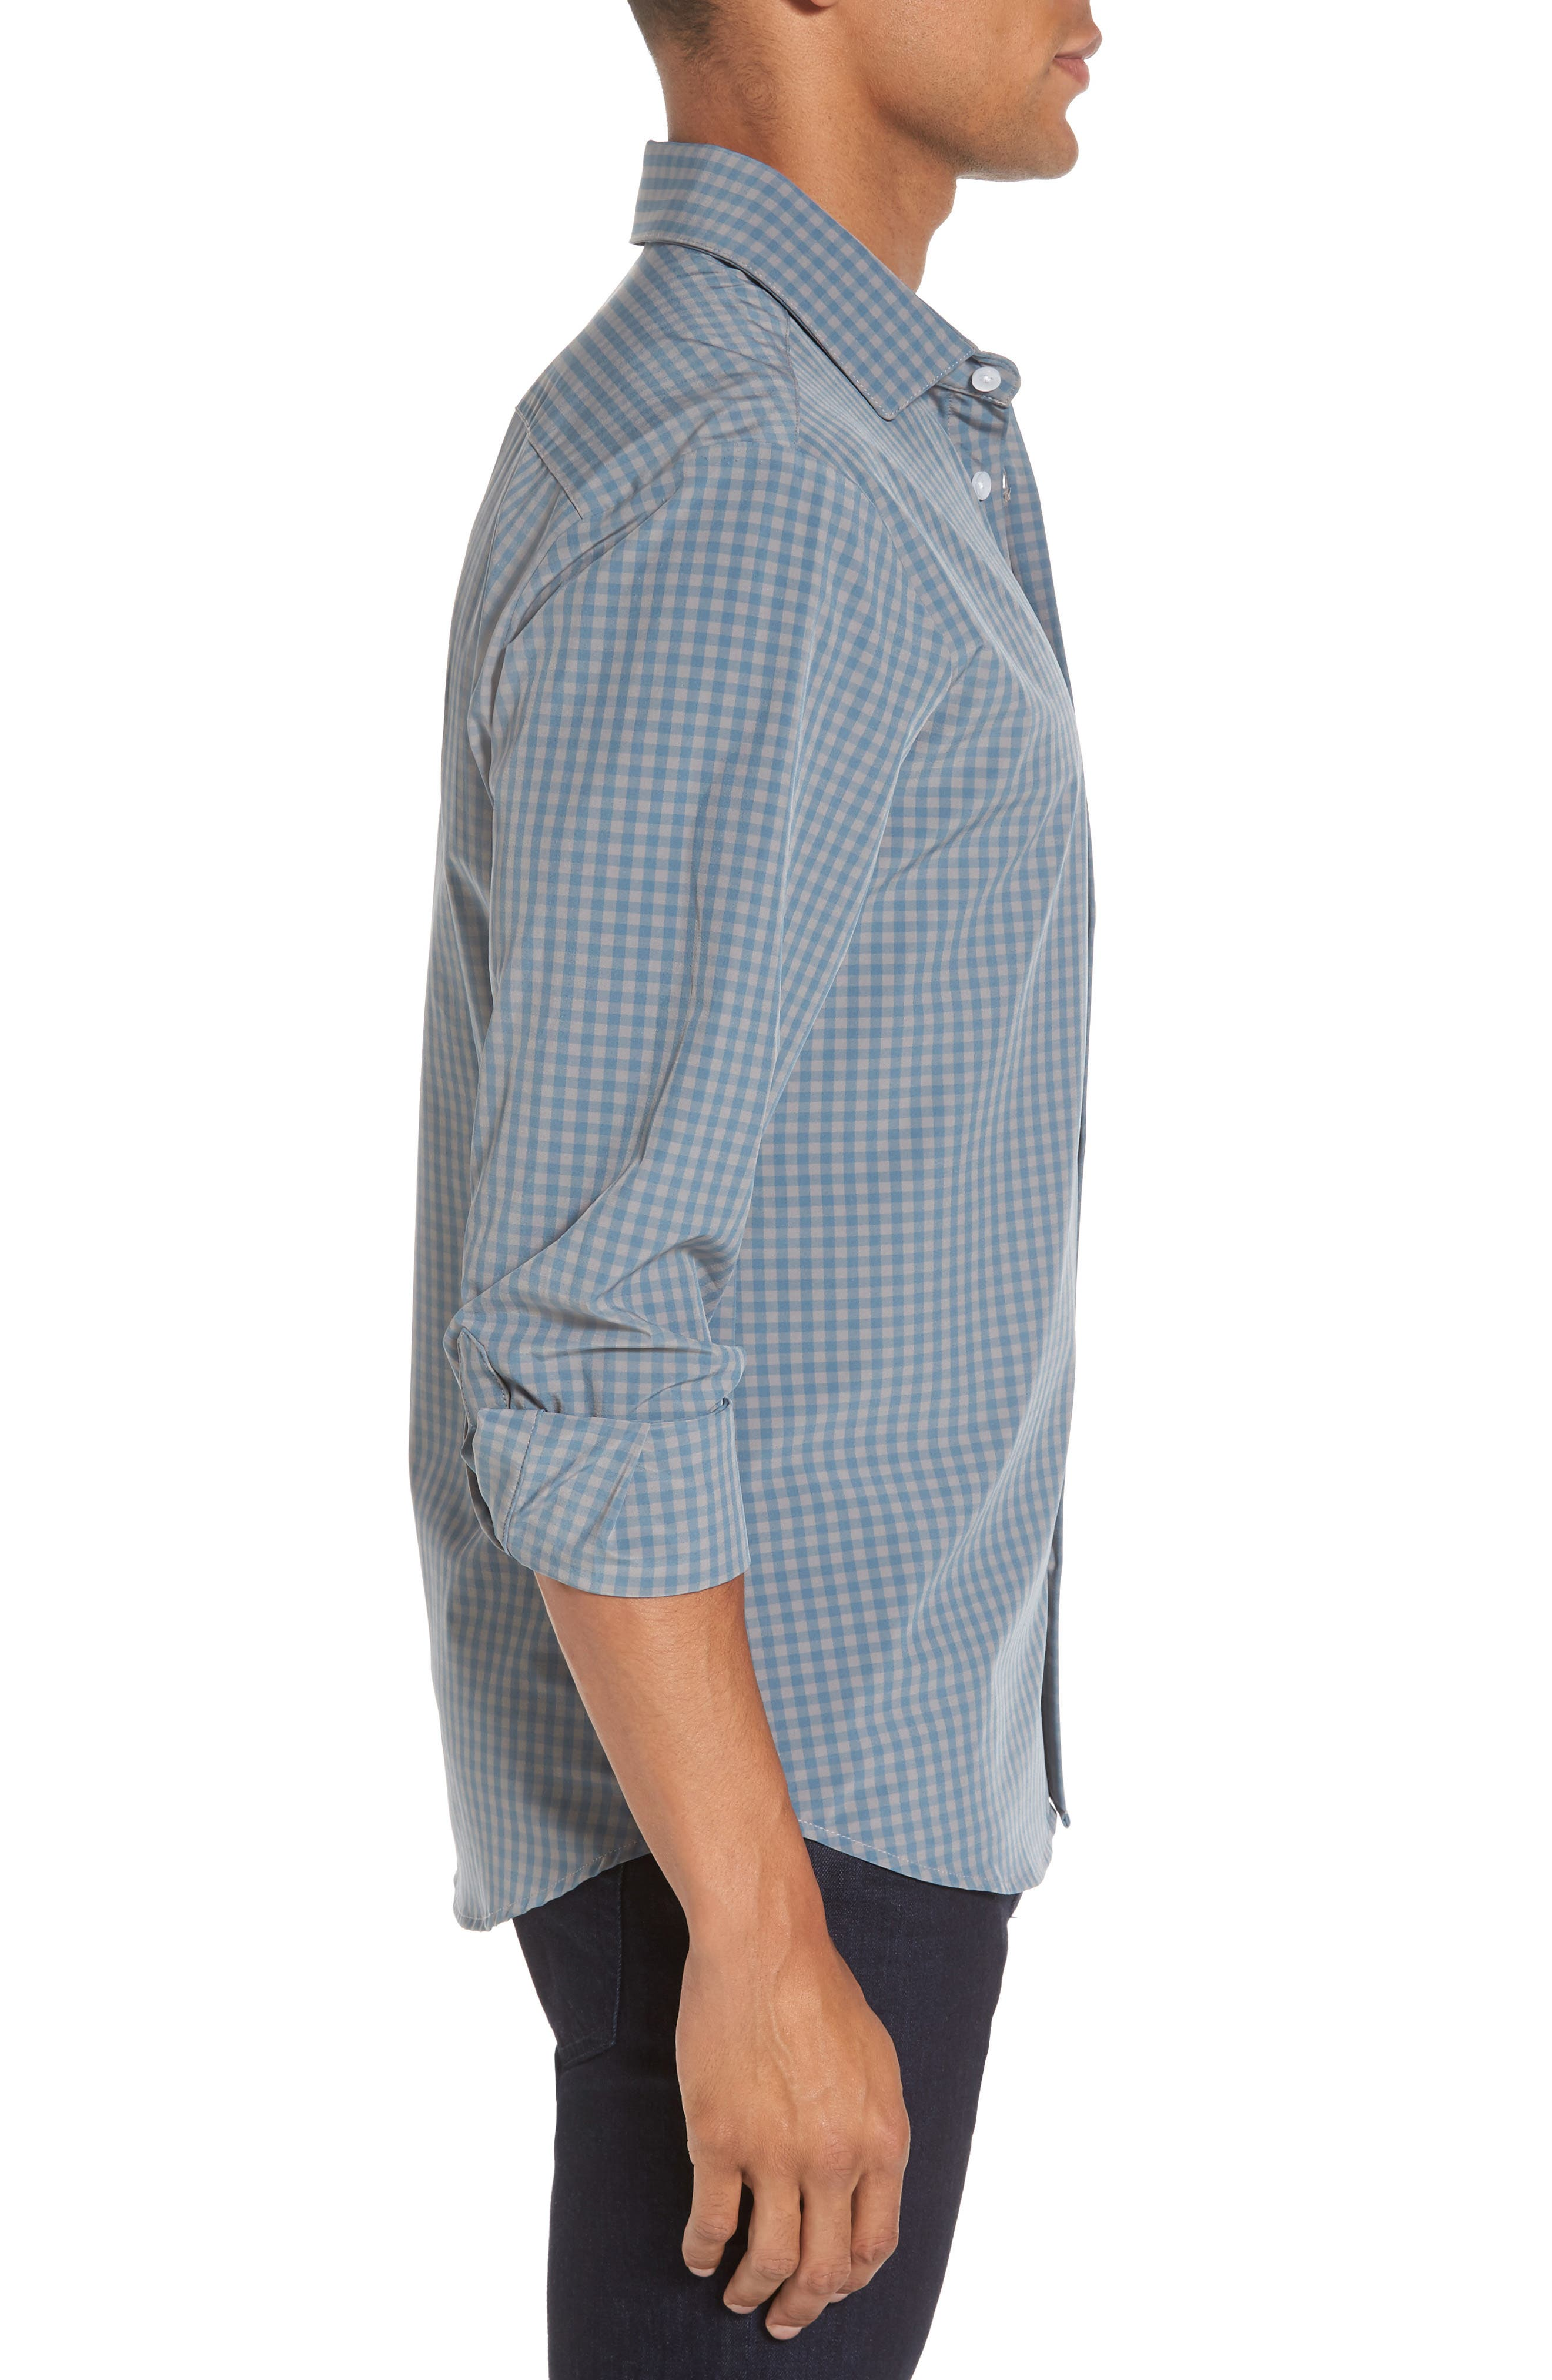 Knox Blue Smoke & Grey Gingham Sport Shirt,                             Alternate thumbnail 3, color,                             Blue